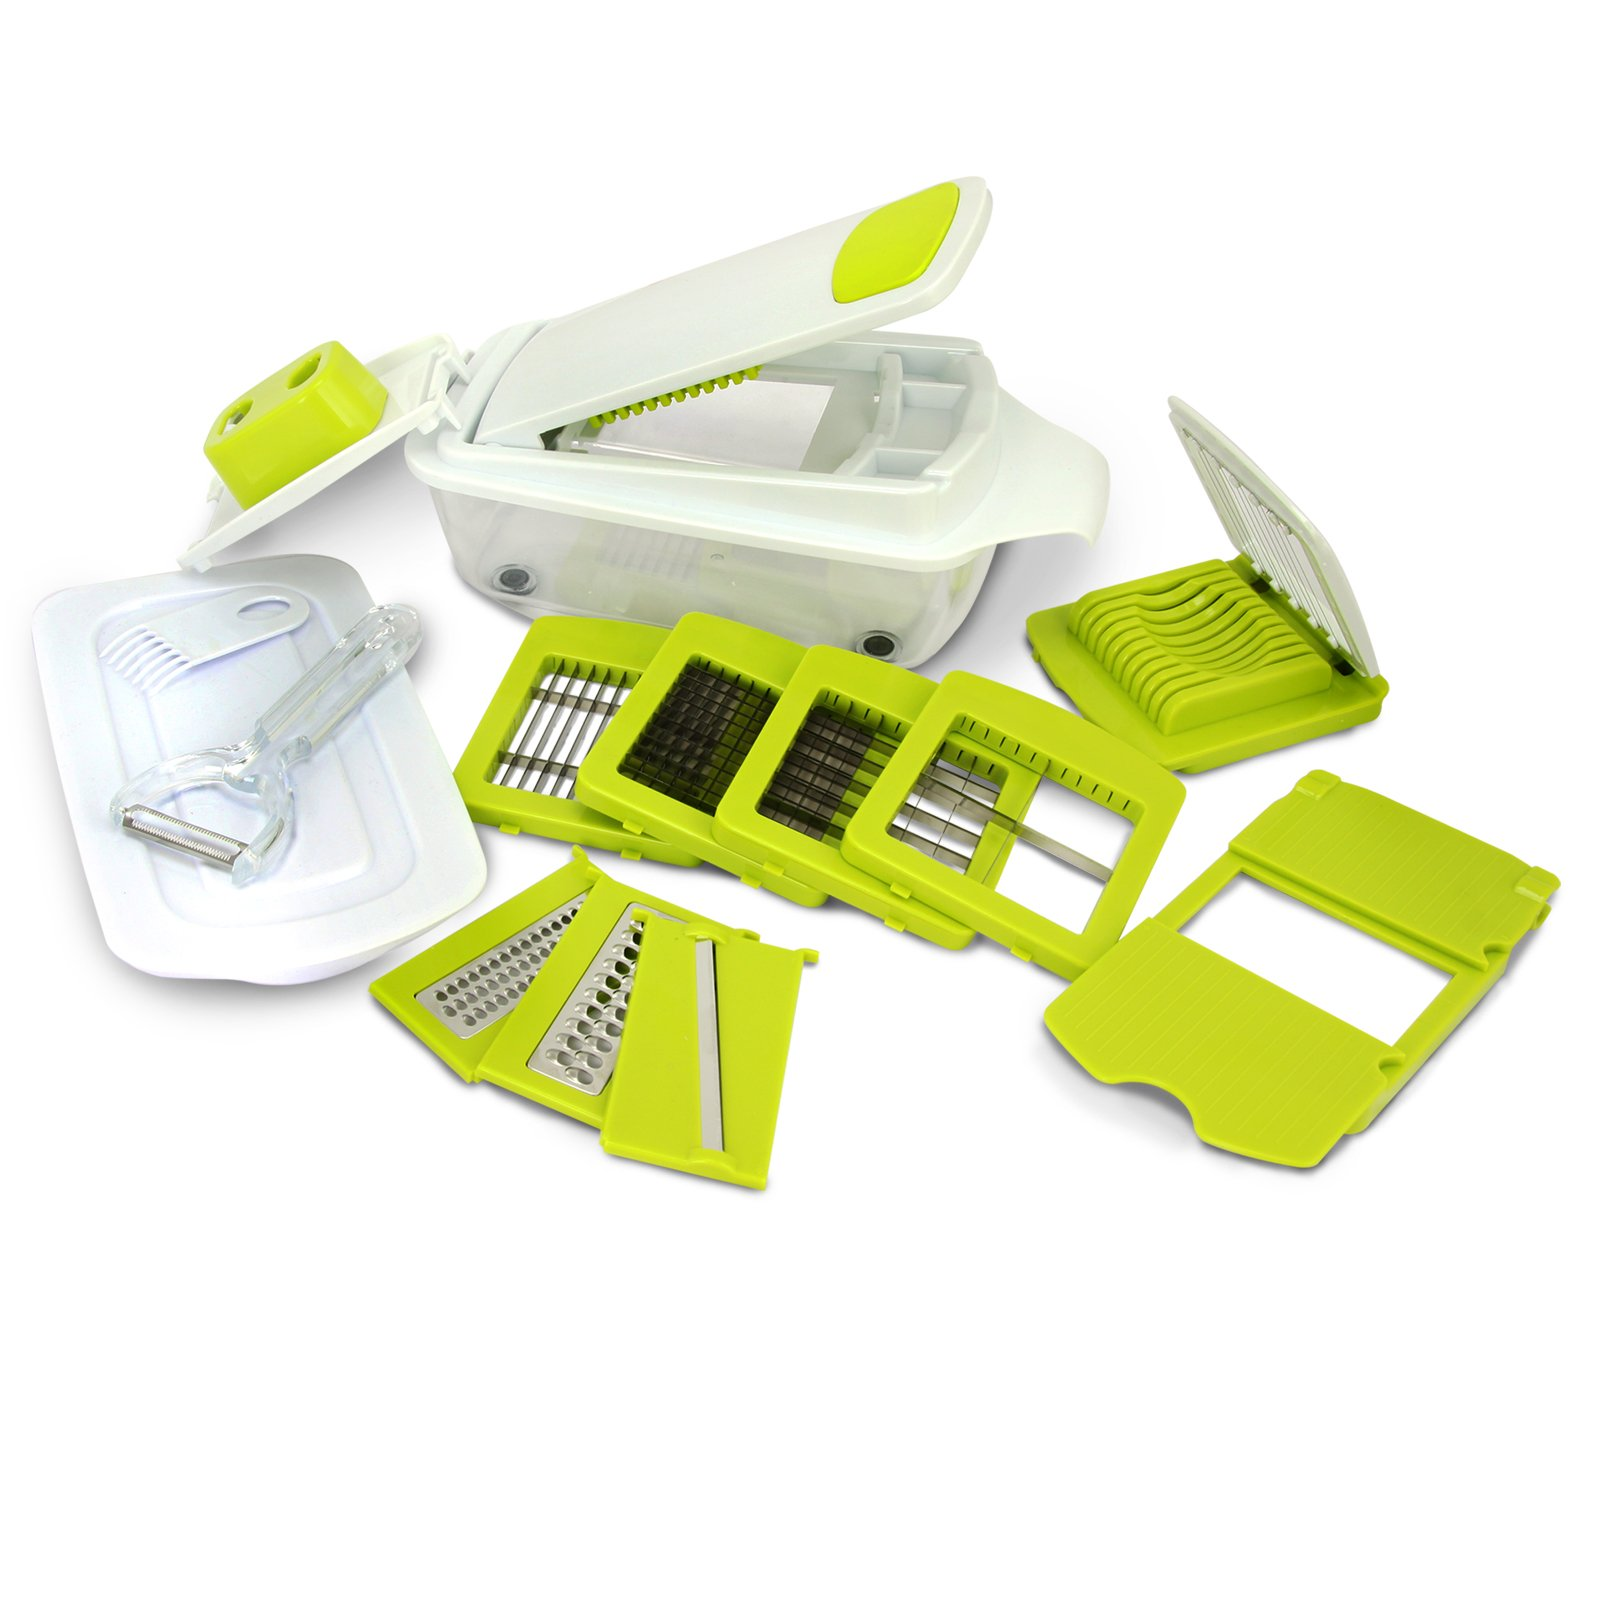 MegaChef 8-in-1 Multi-Use Slicer Dicer and Chopper Kitchen Multi-Use Tool Mandoline, Vegetable and Fruit Peeler and Soft Slicer